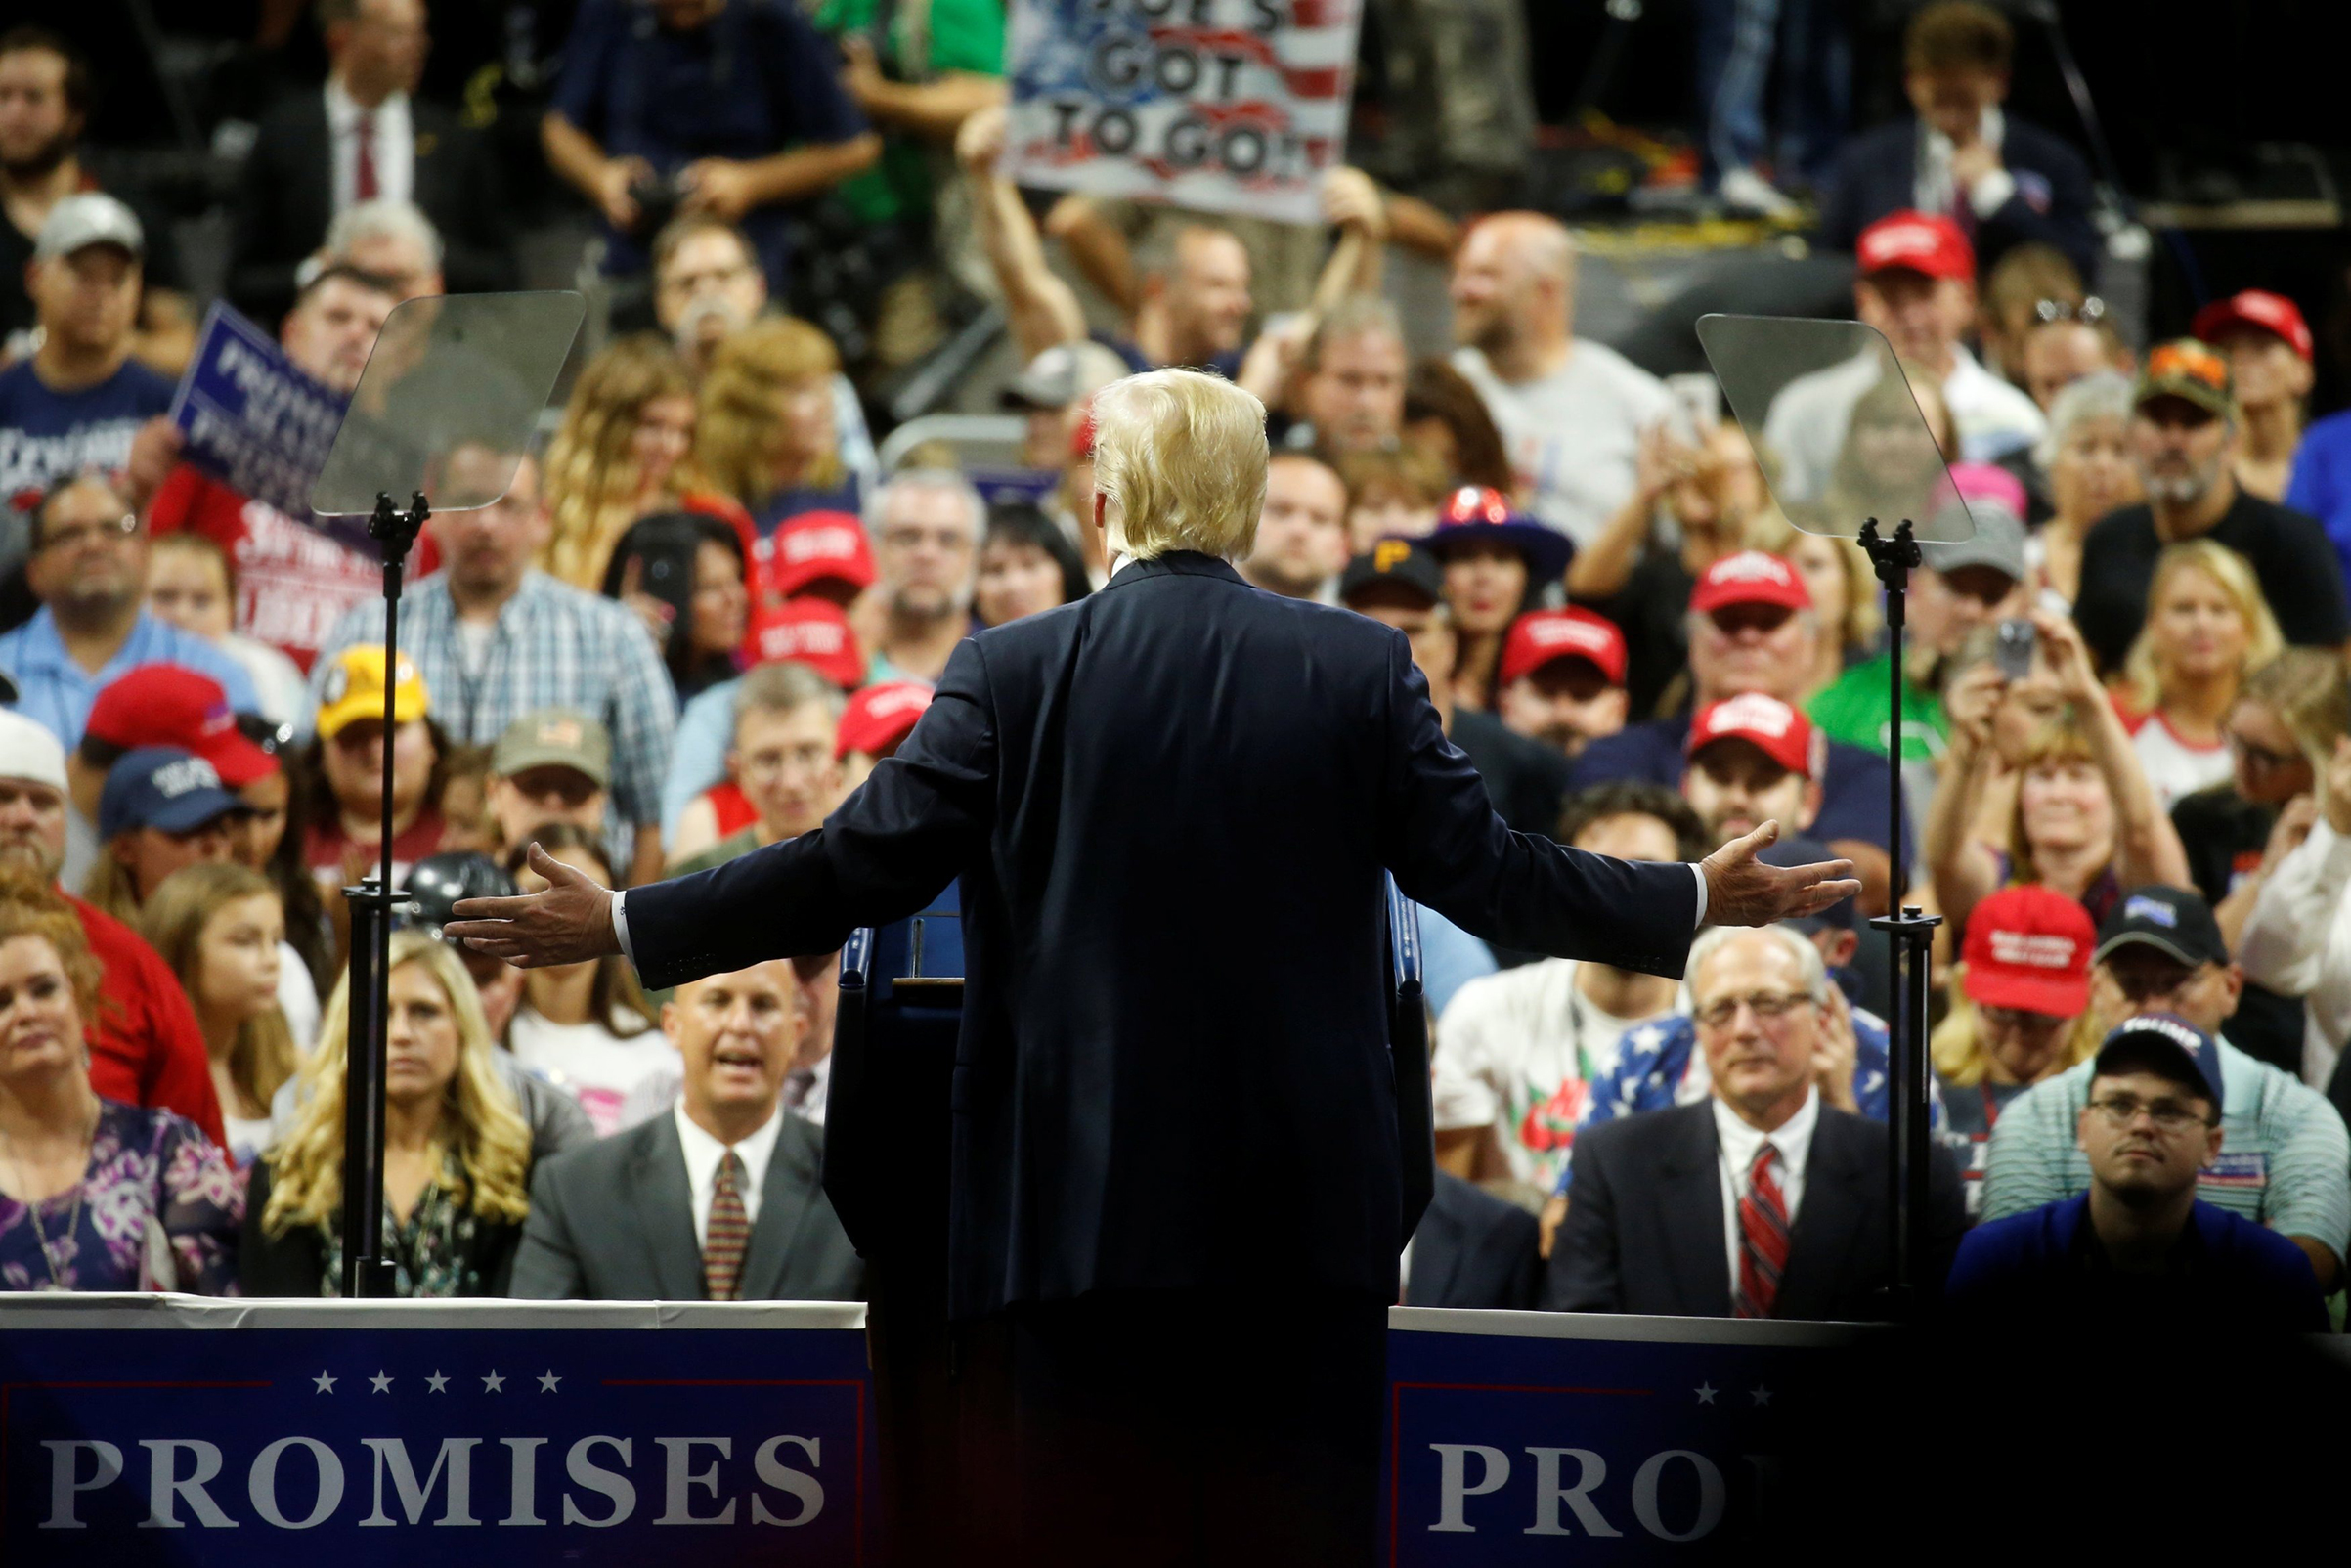 US President Donald Trump speaks at a Make America Great Again rally at the Civic Center in Charleston